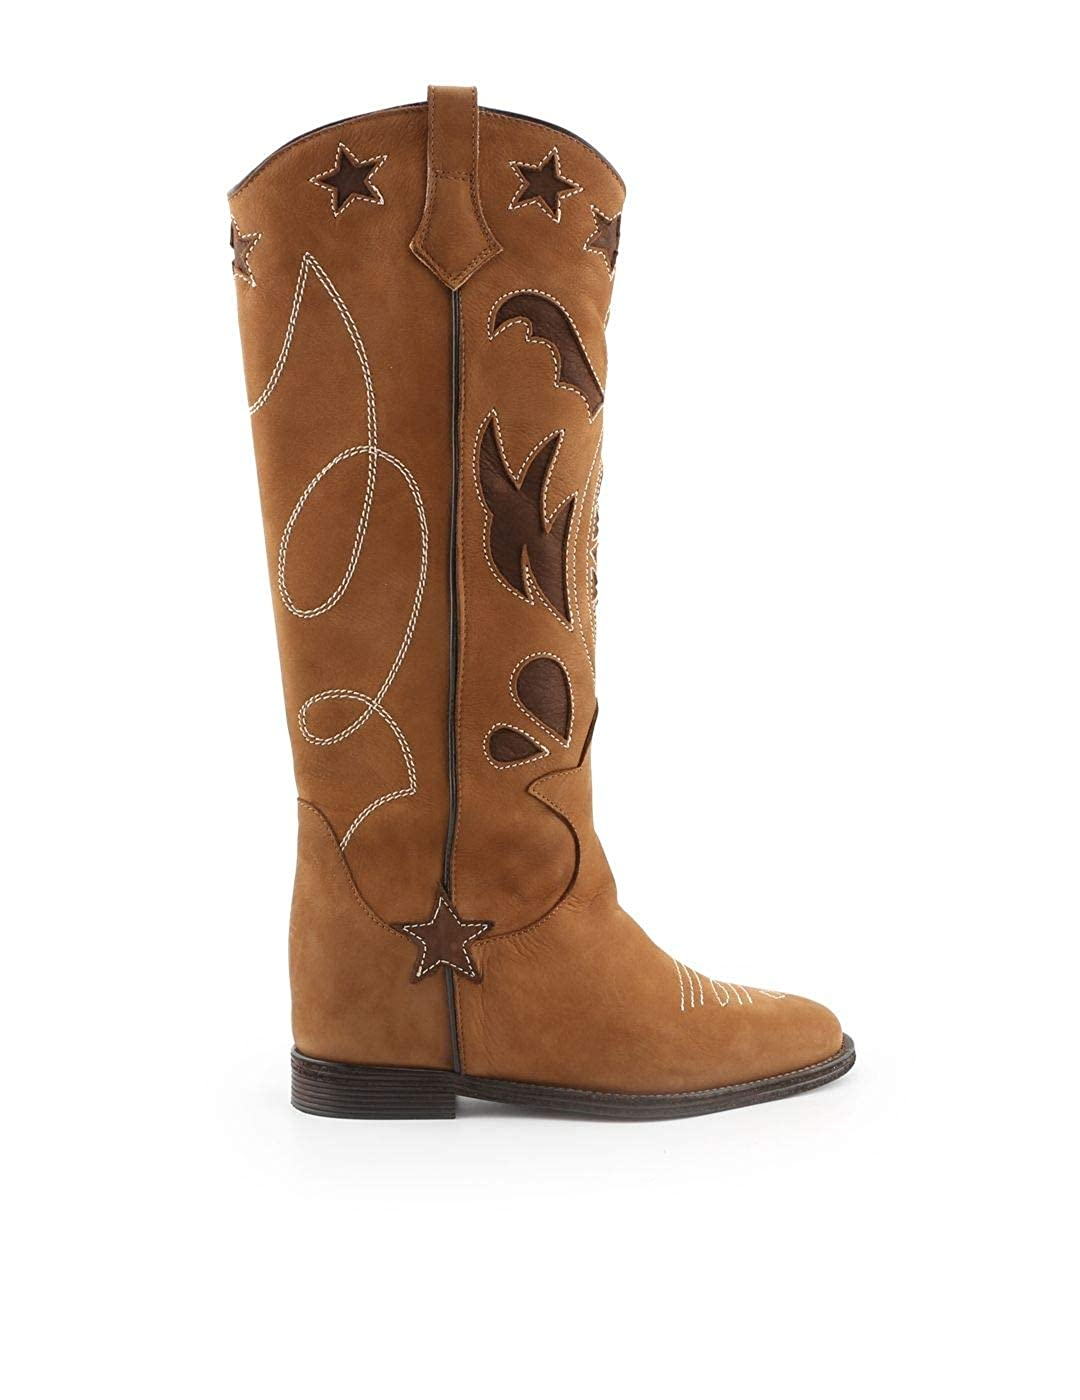 - VIA ROMA 15 Women's 3091BROWN Brown Leather Boots